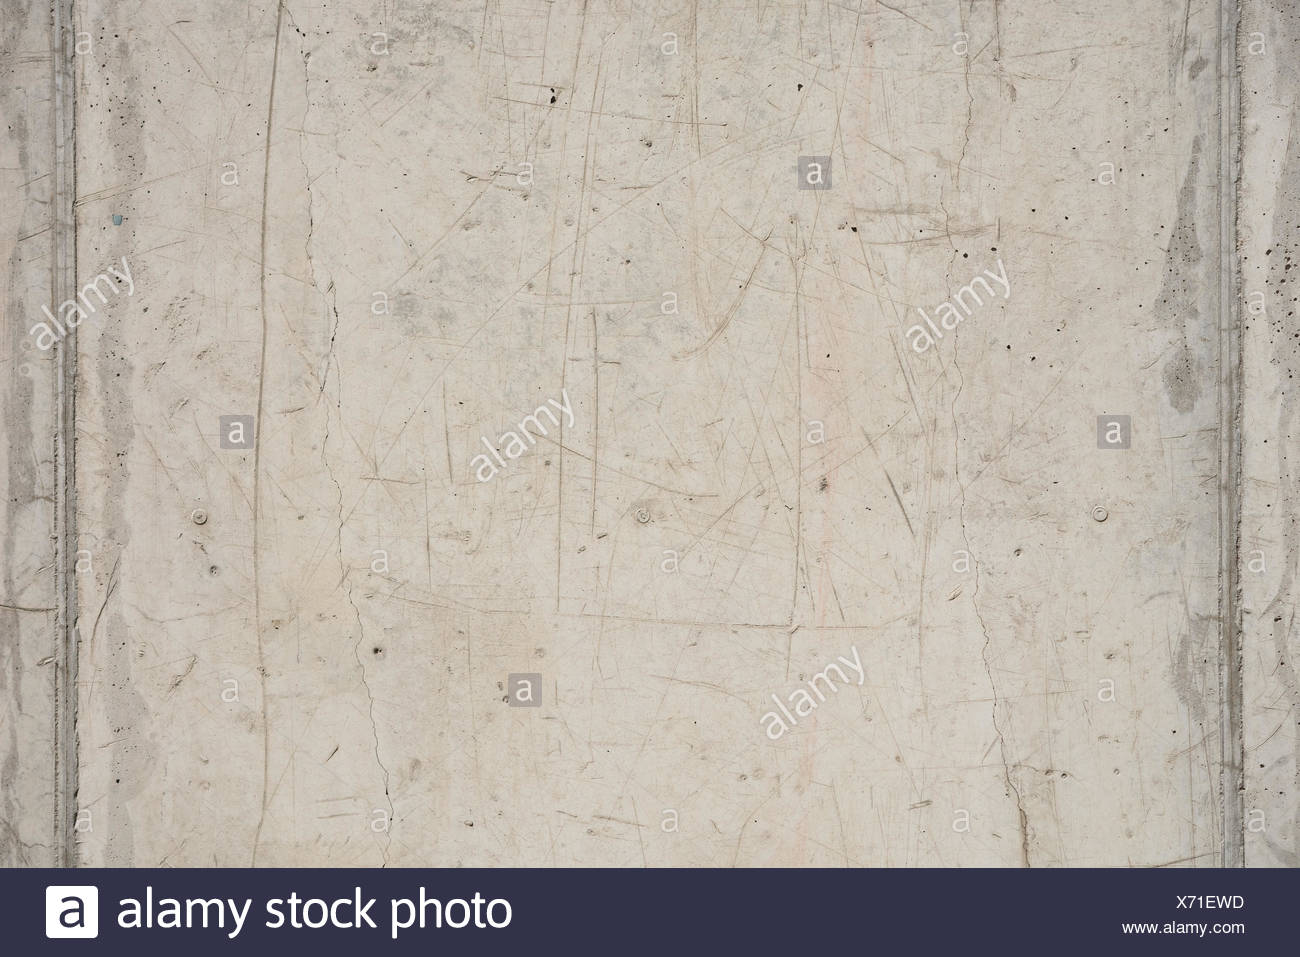 Hintergrund, Sichtbeton, Background, Concrete - Stock Image